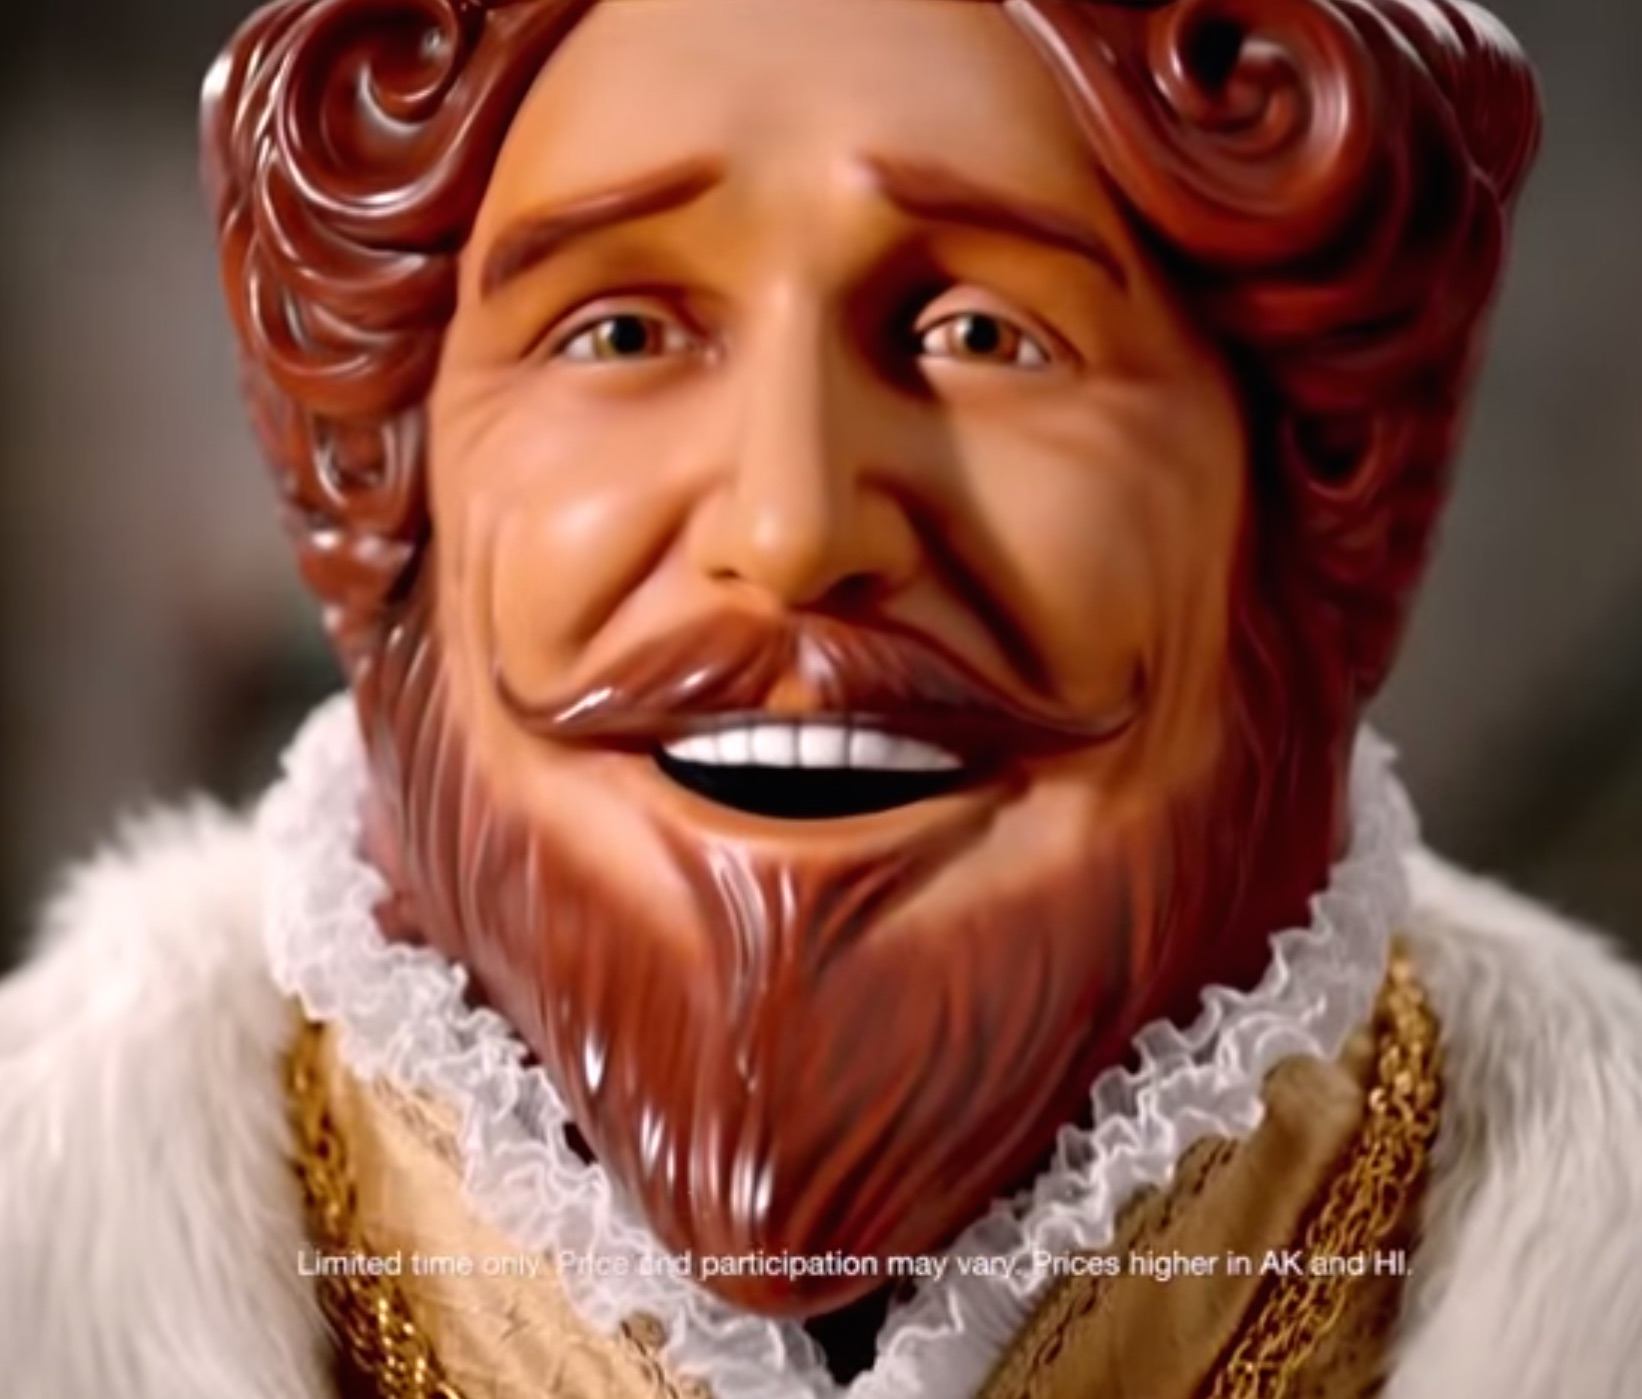 Burger King's Fantastically Creepy King Mascot Is Back